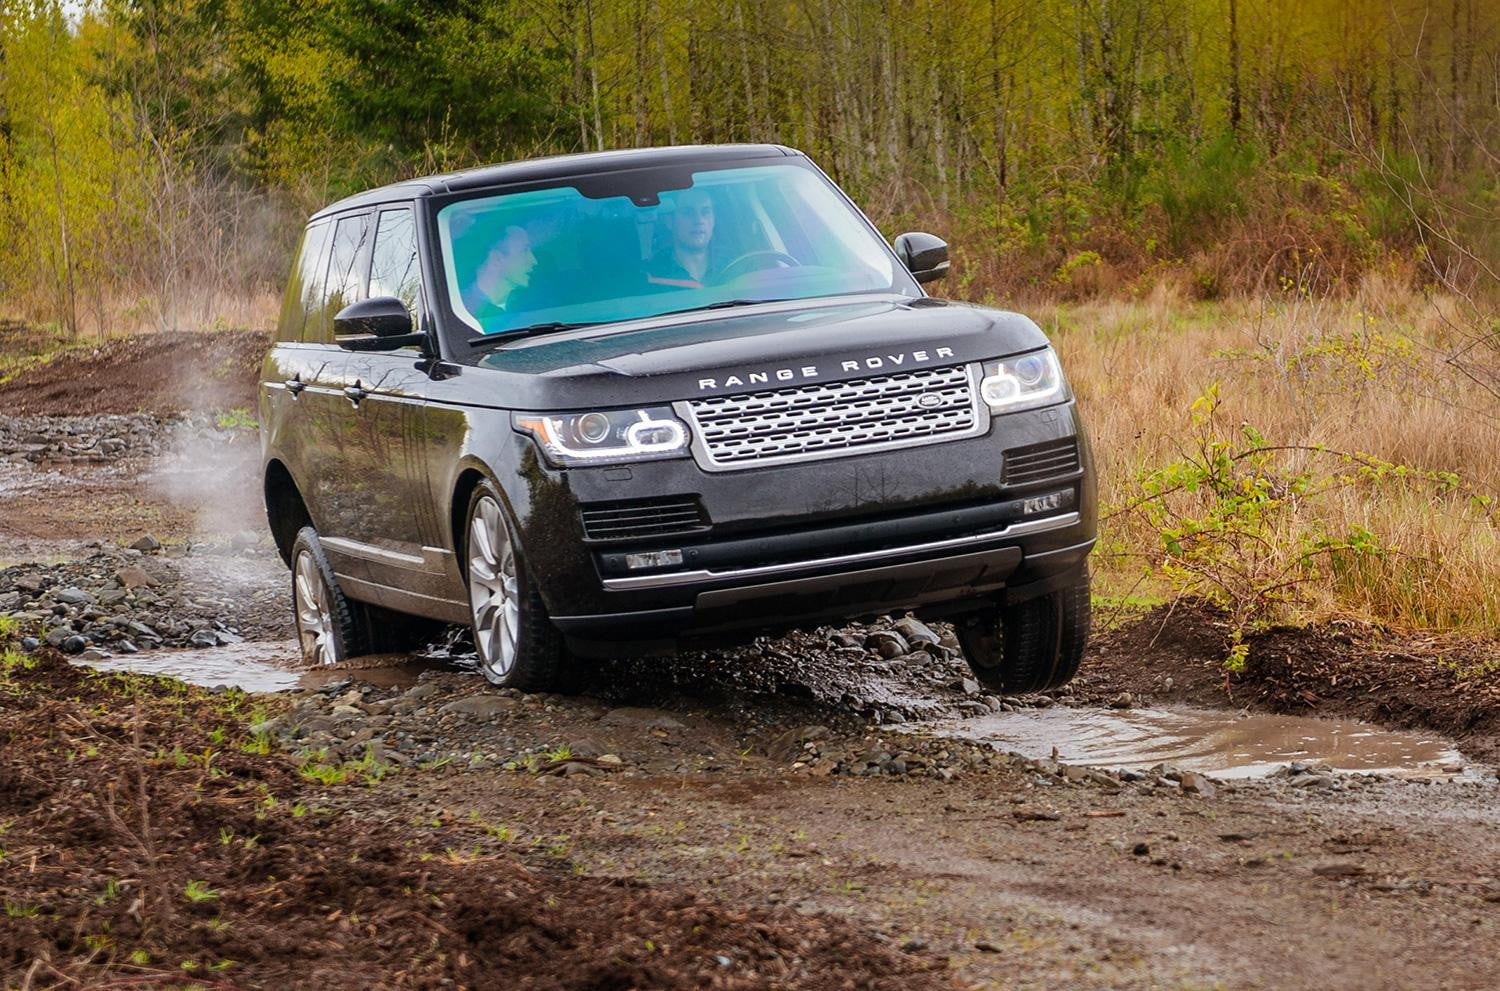 Mudfest 2013 Supercharged Range Rover 30